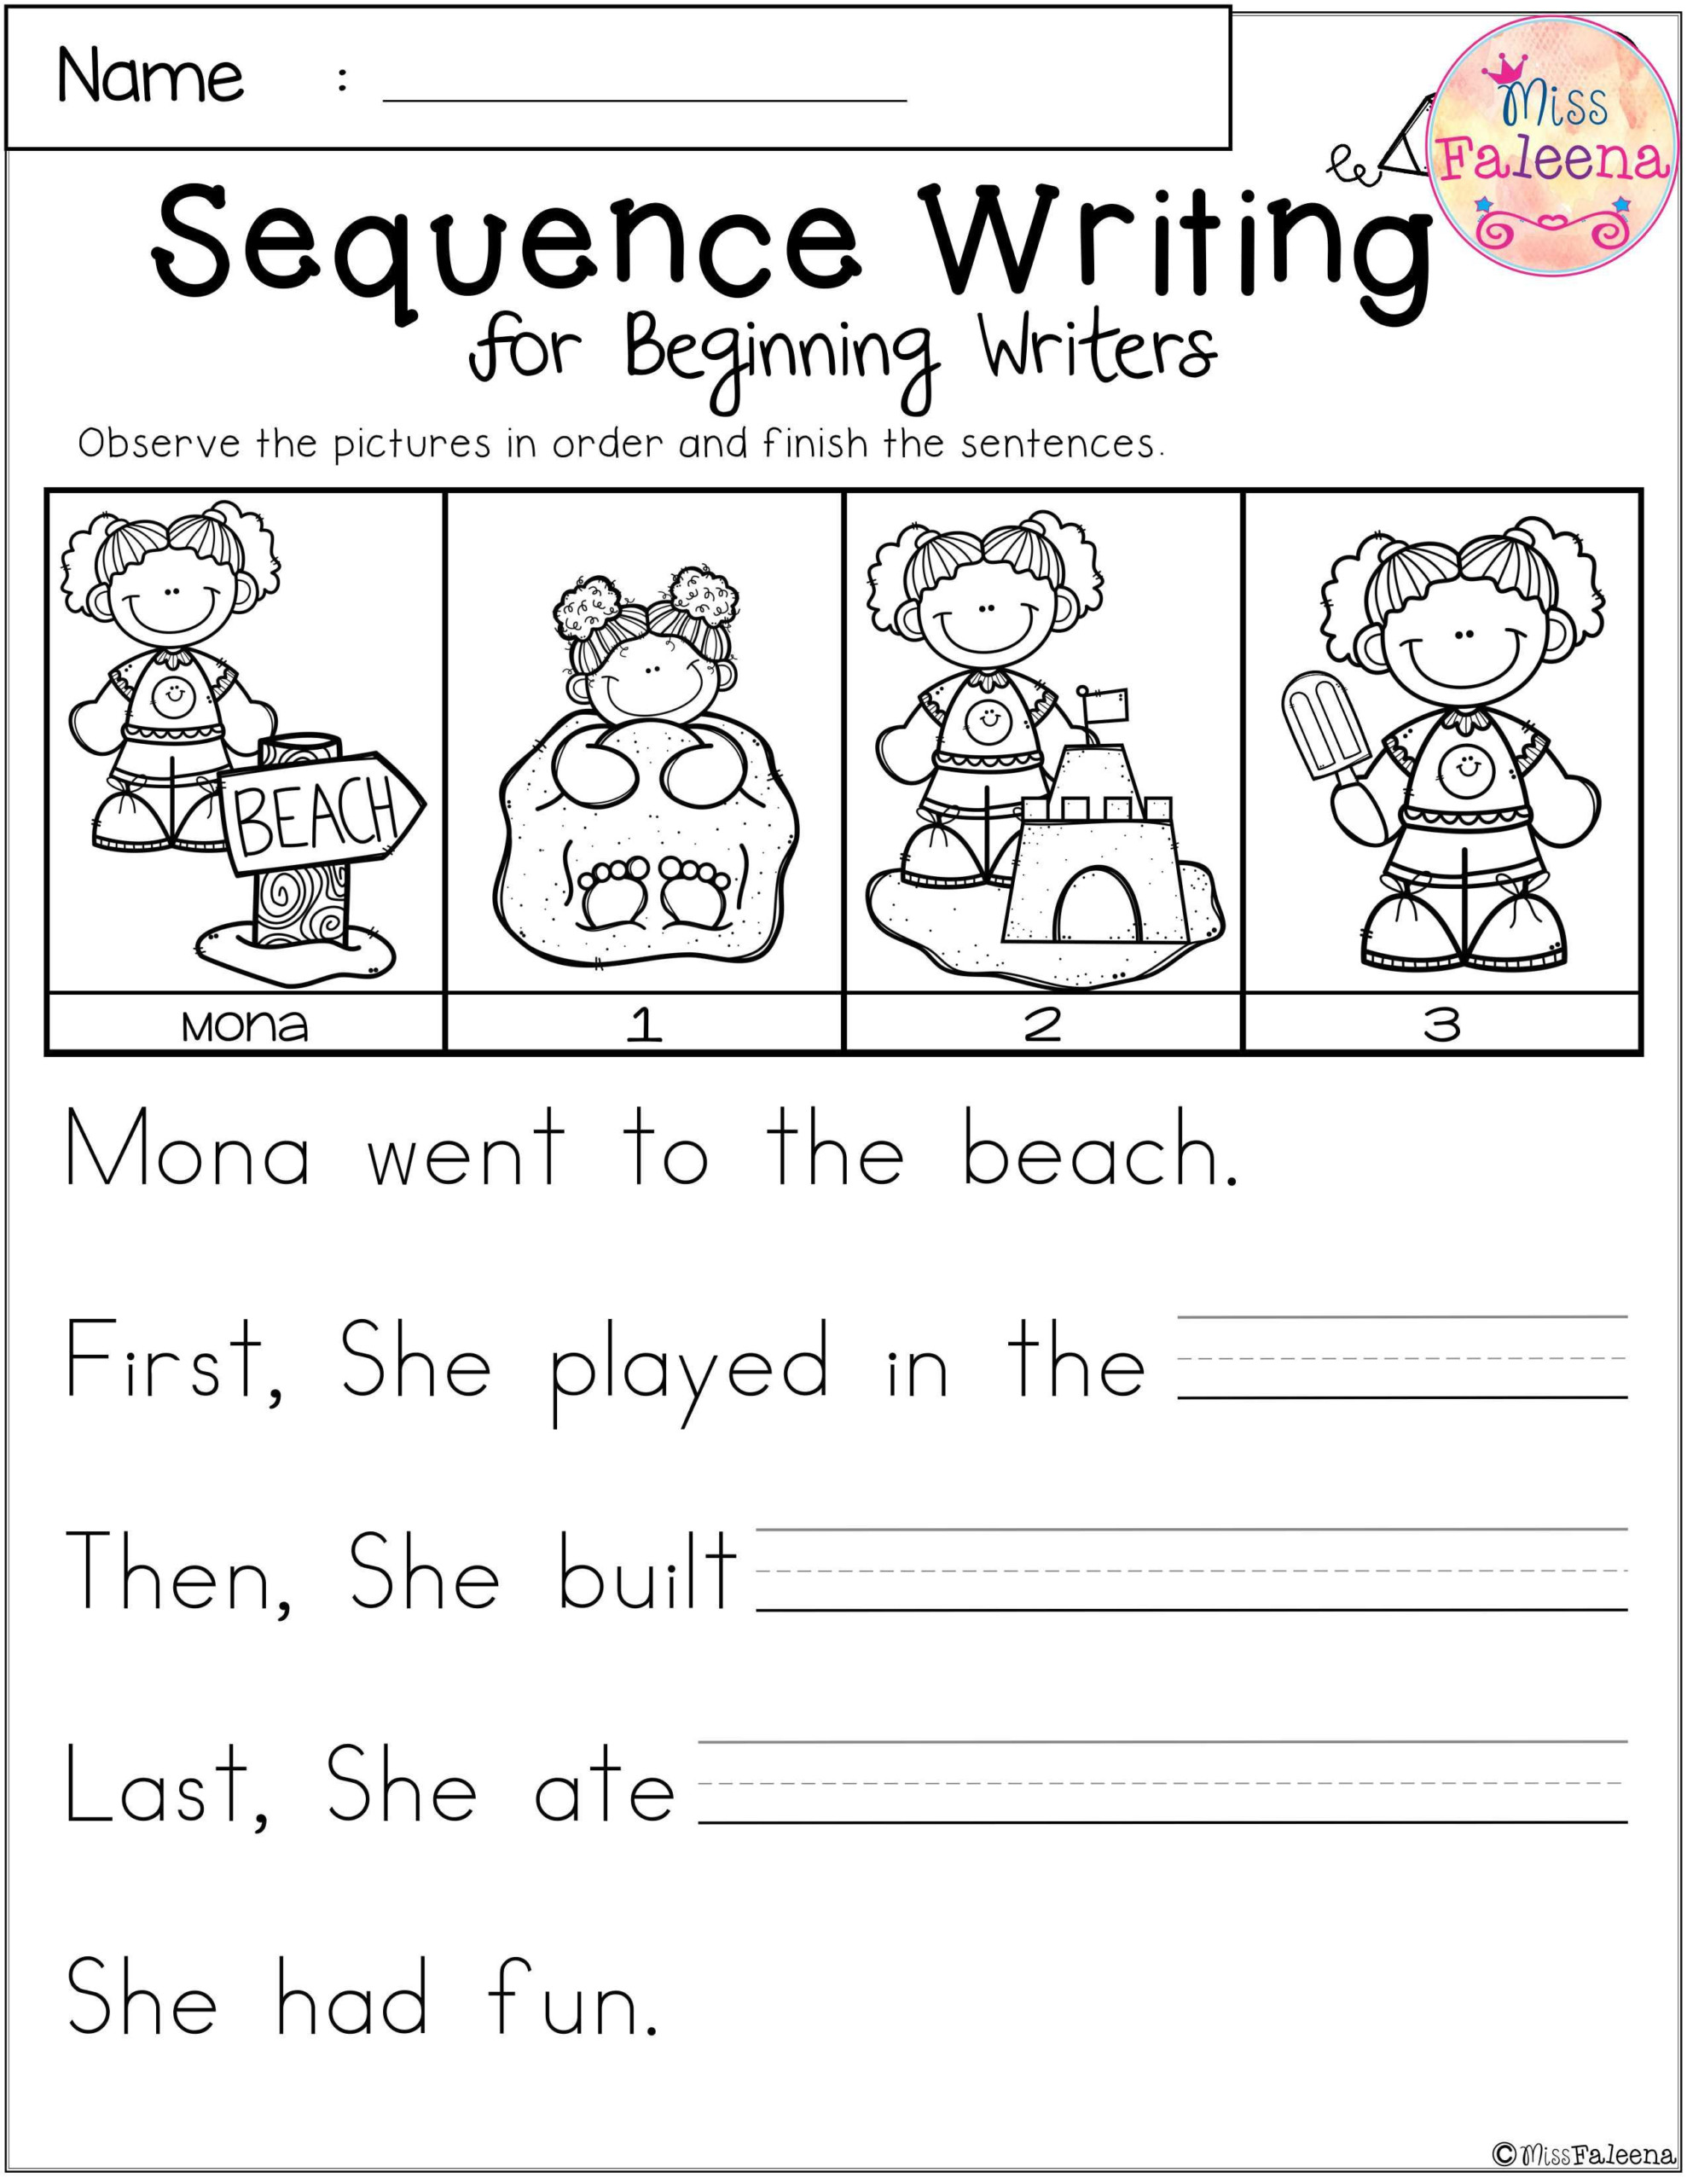 Free Sequence Writing For Beginning Writers | Sequencing